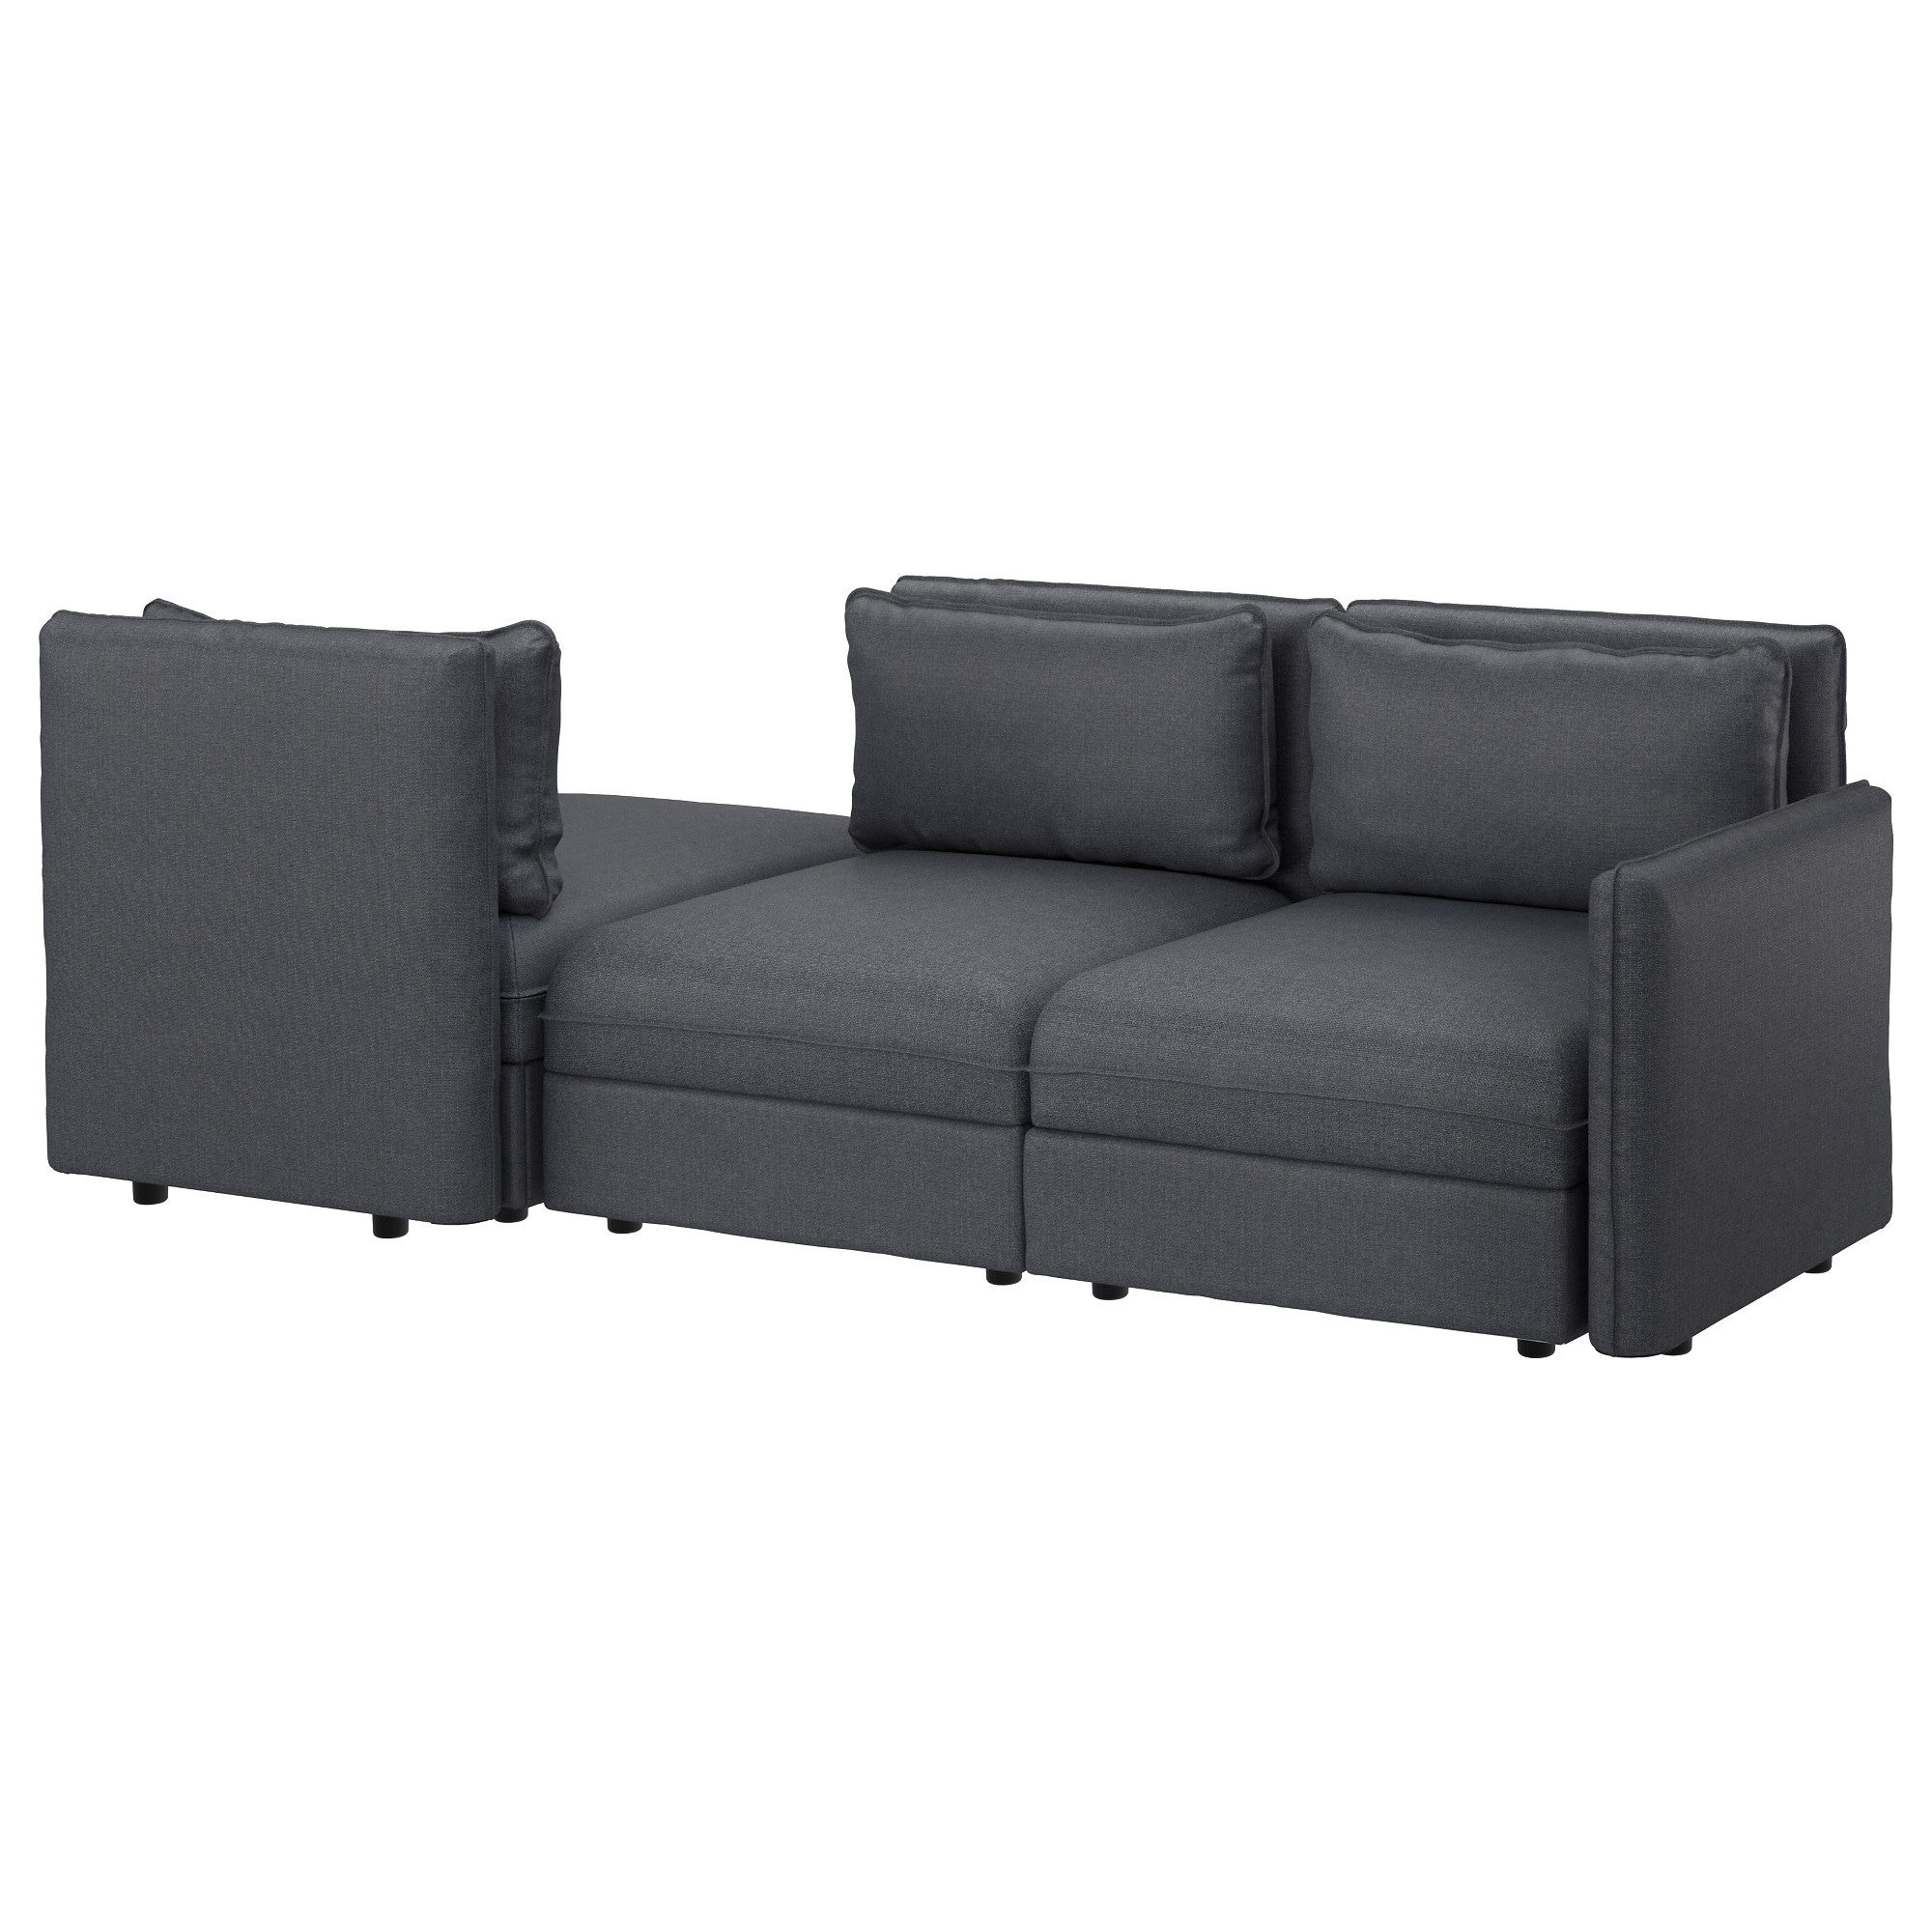 Vallentuna Sleeper Sectional, 3 Seat  Hillared Dark Gray  Ikea